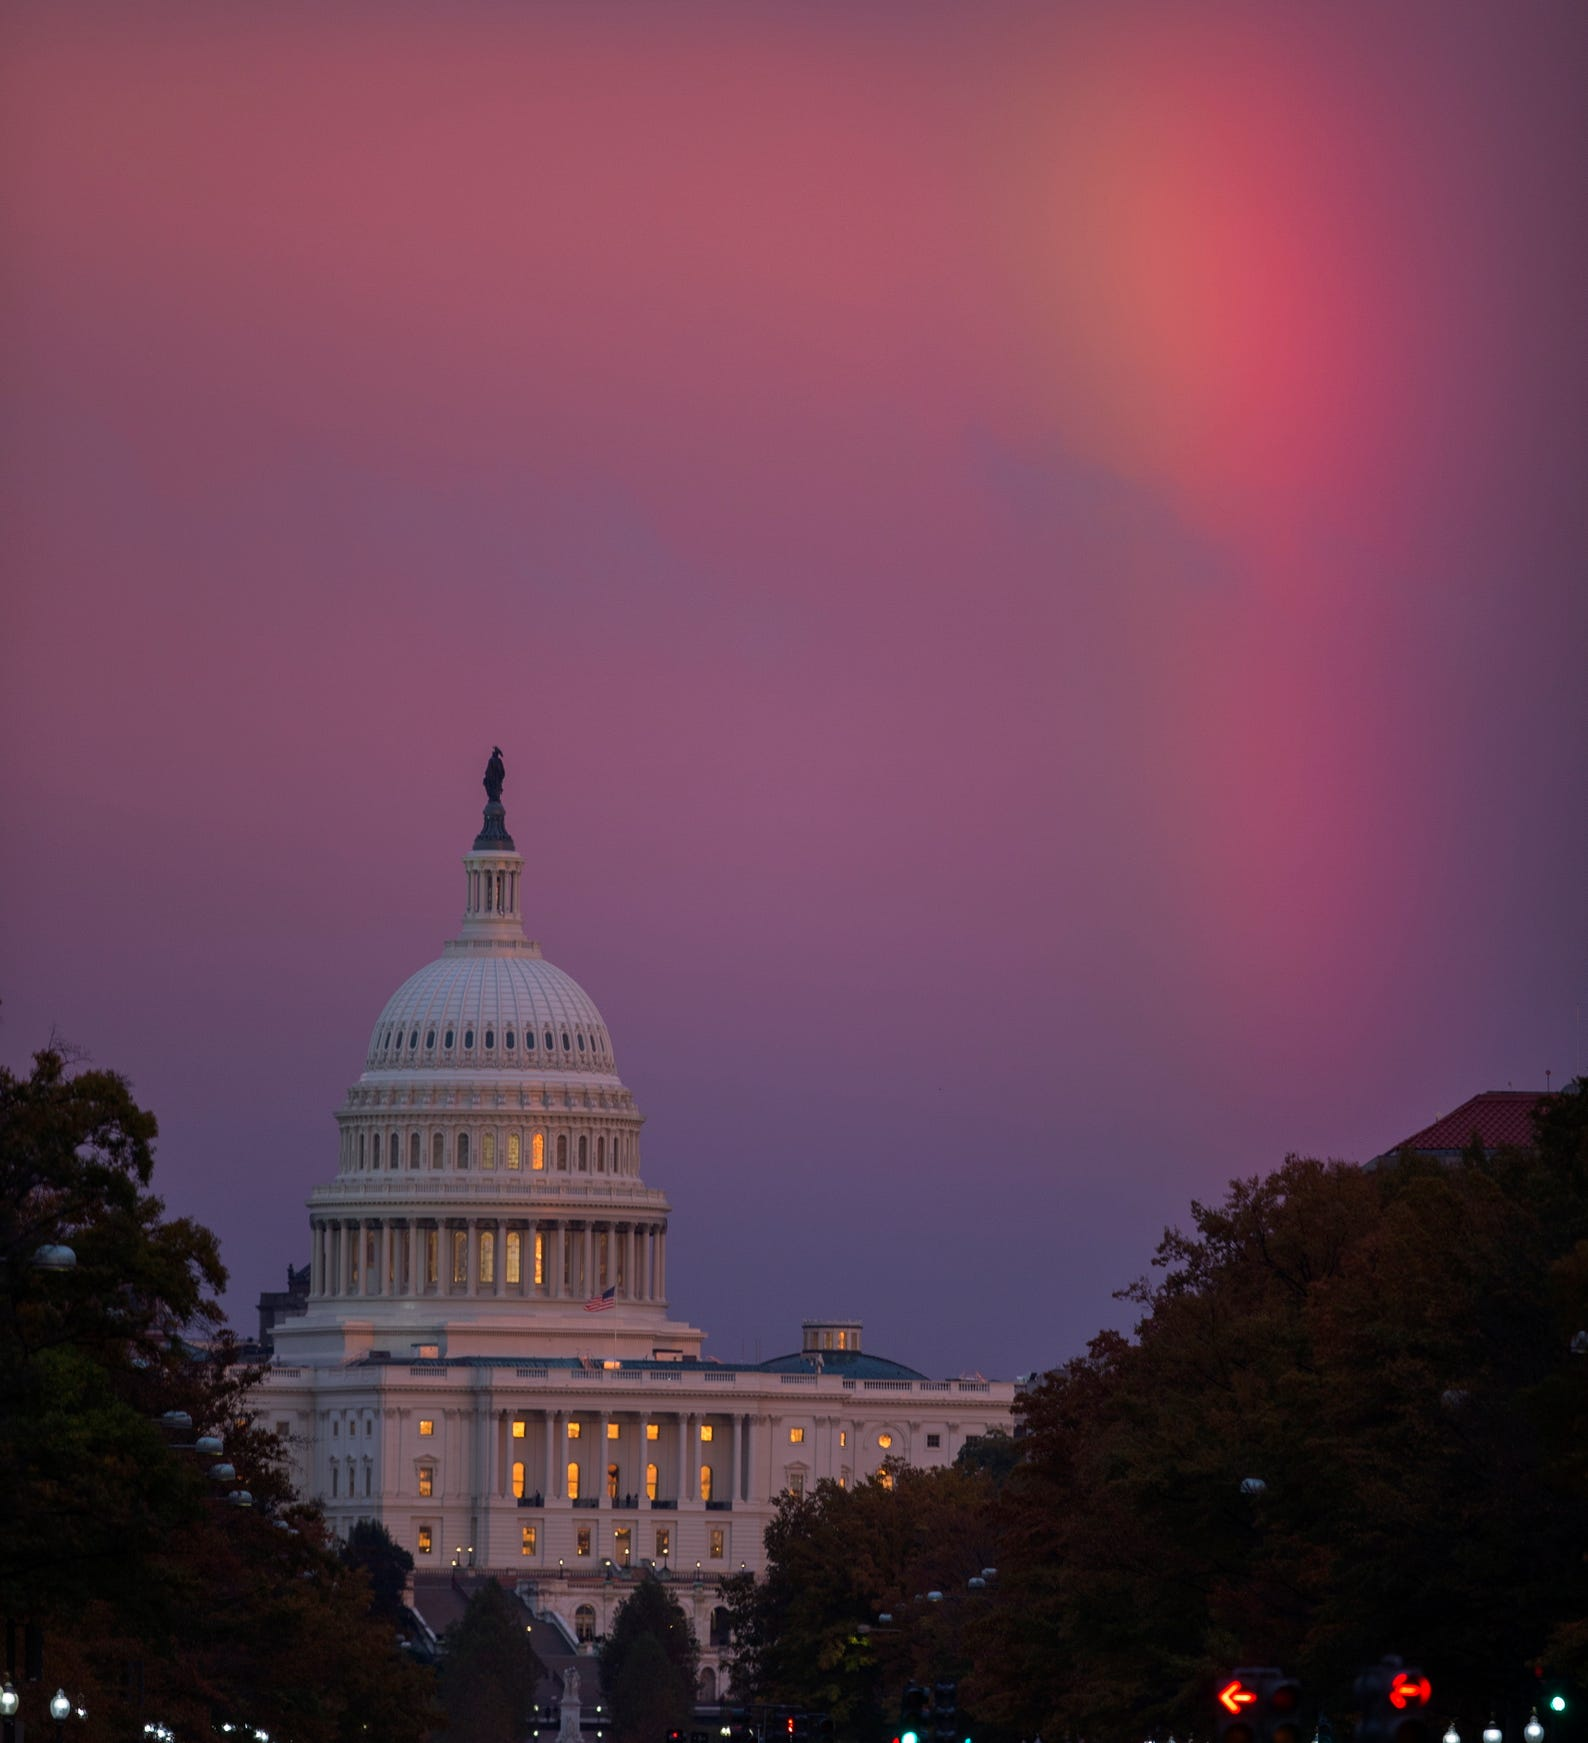 A rainbow appears near the U.S. Capitol in Washington, D.C., as the first polls close in the 2018 midterm elections on November 6, 2018.